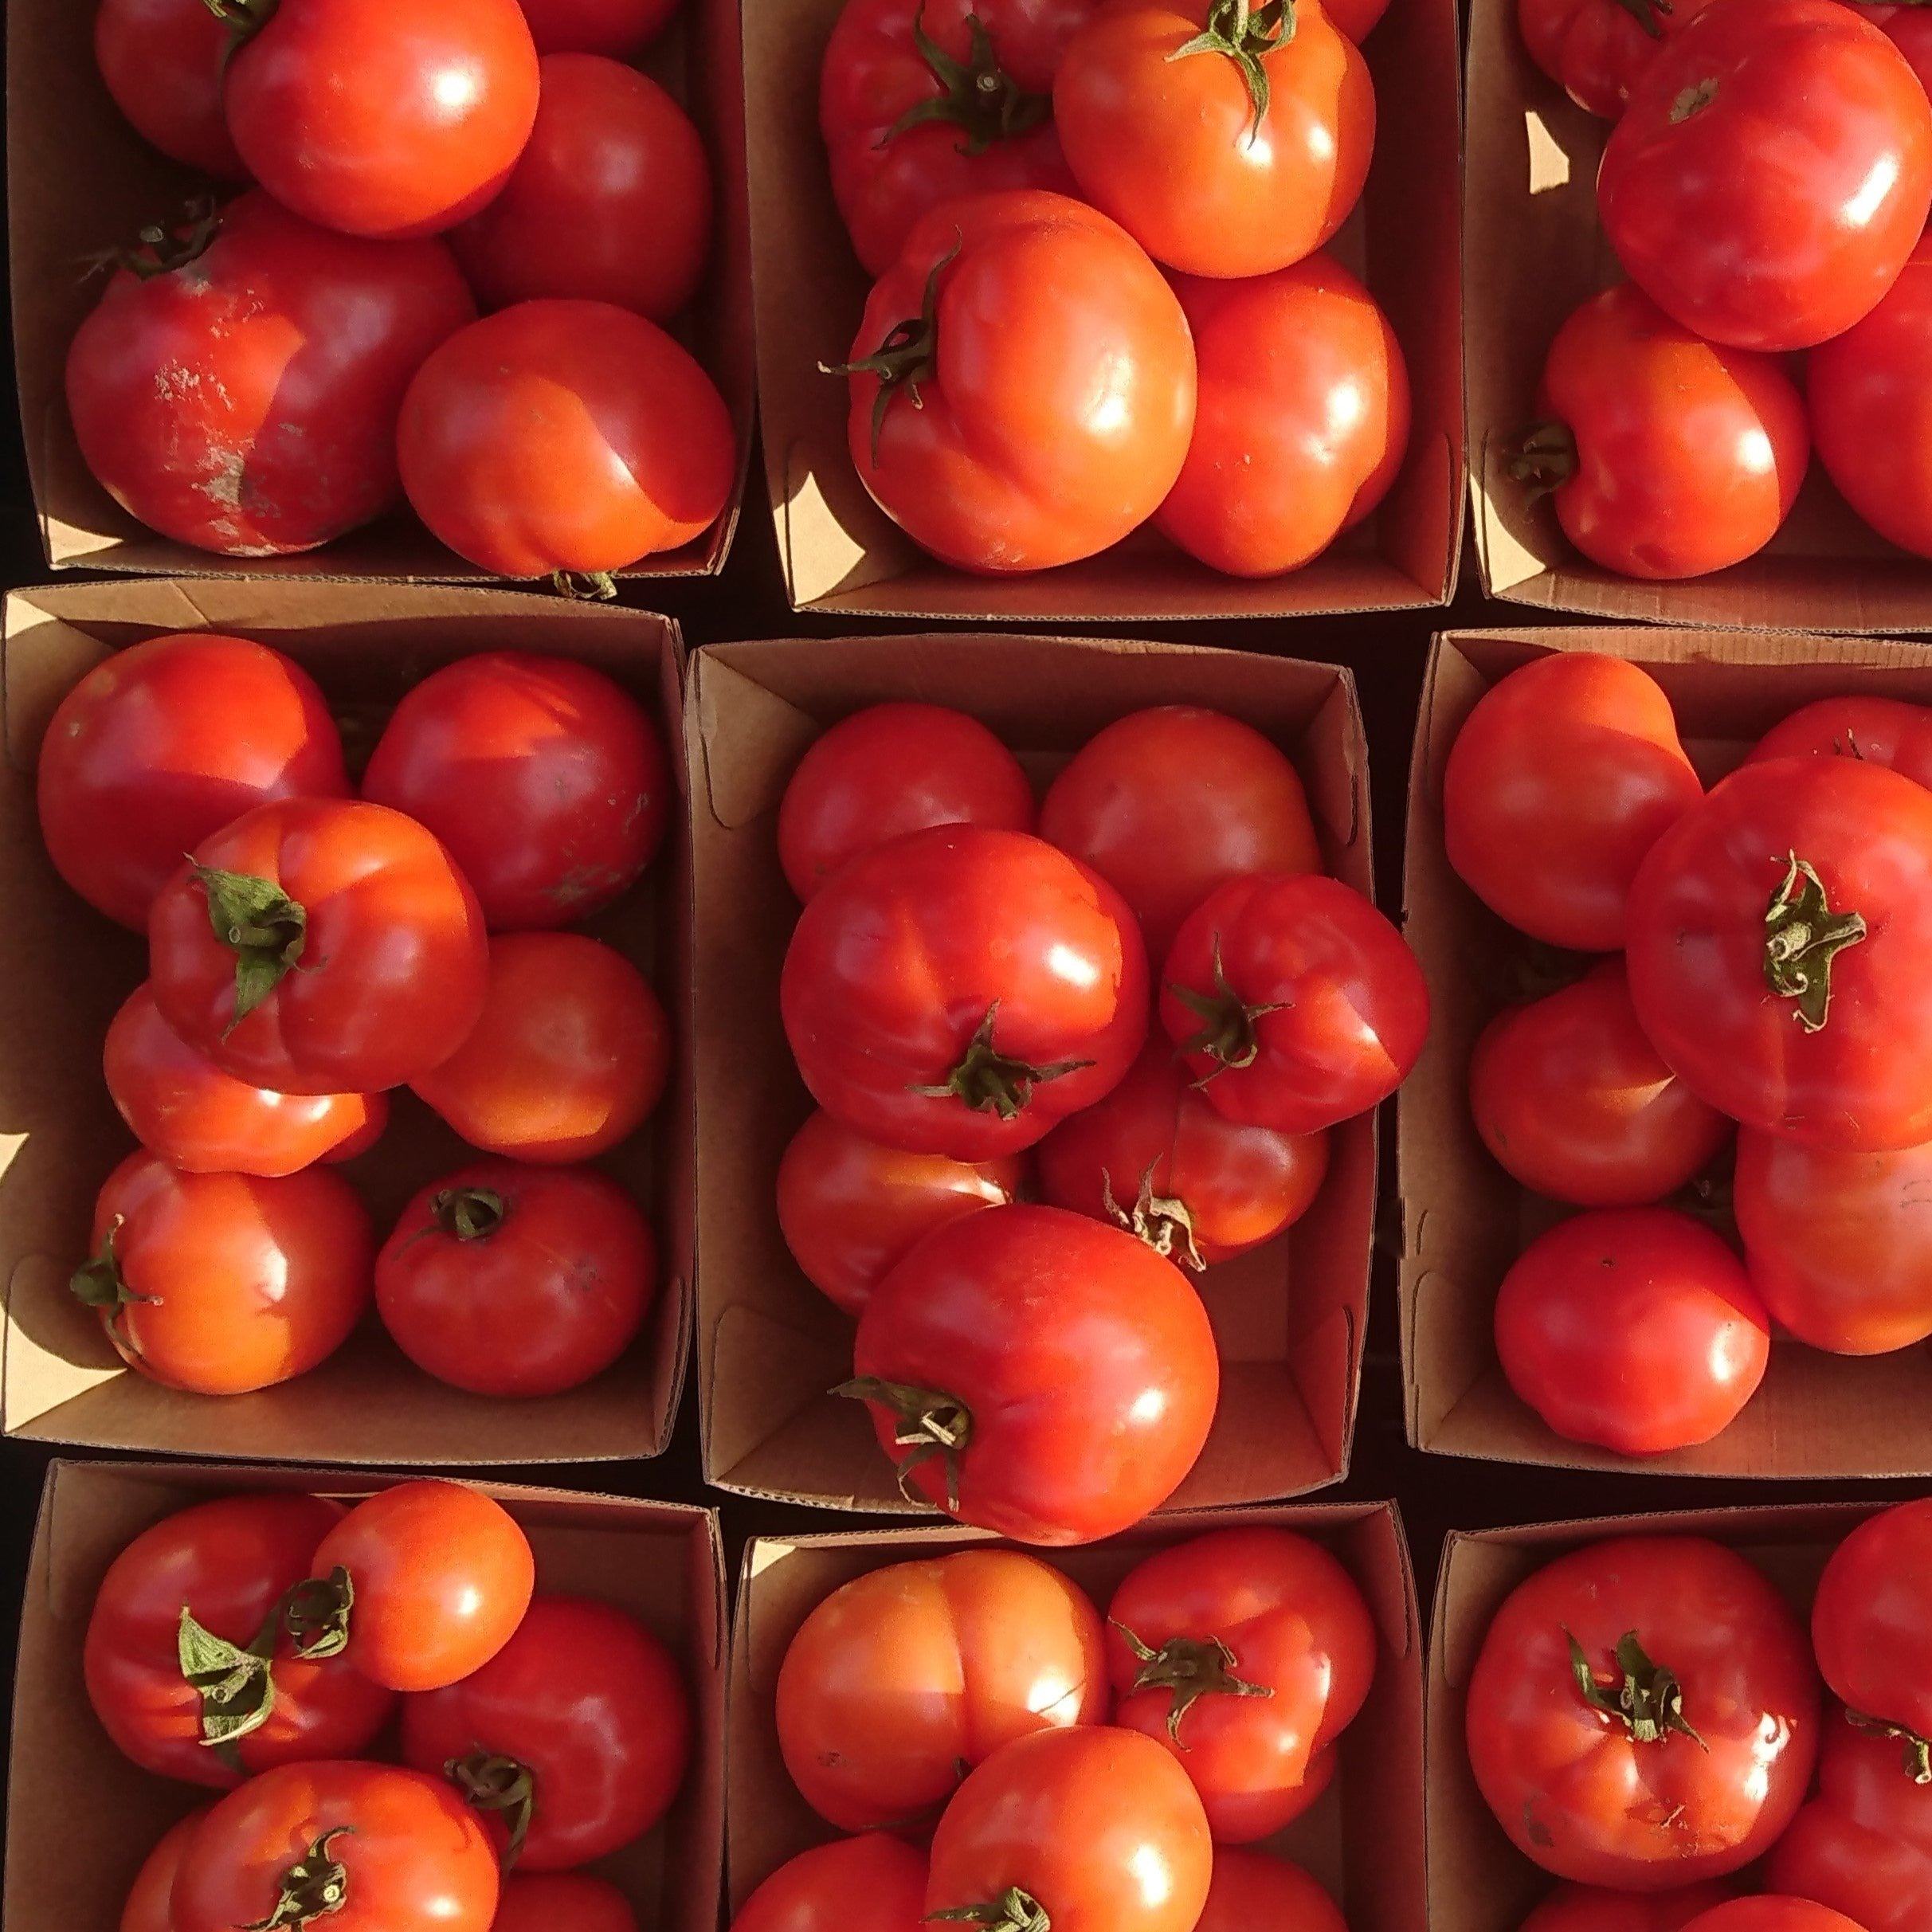 Organic Tomatoes - Untamed Earth